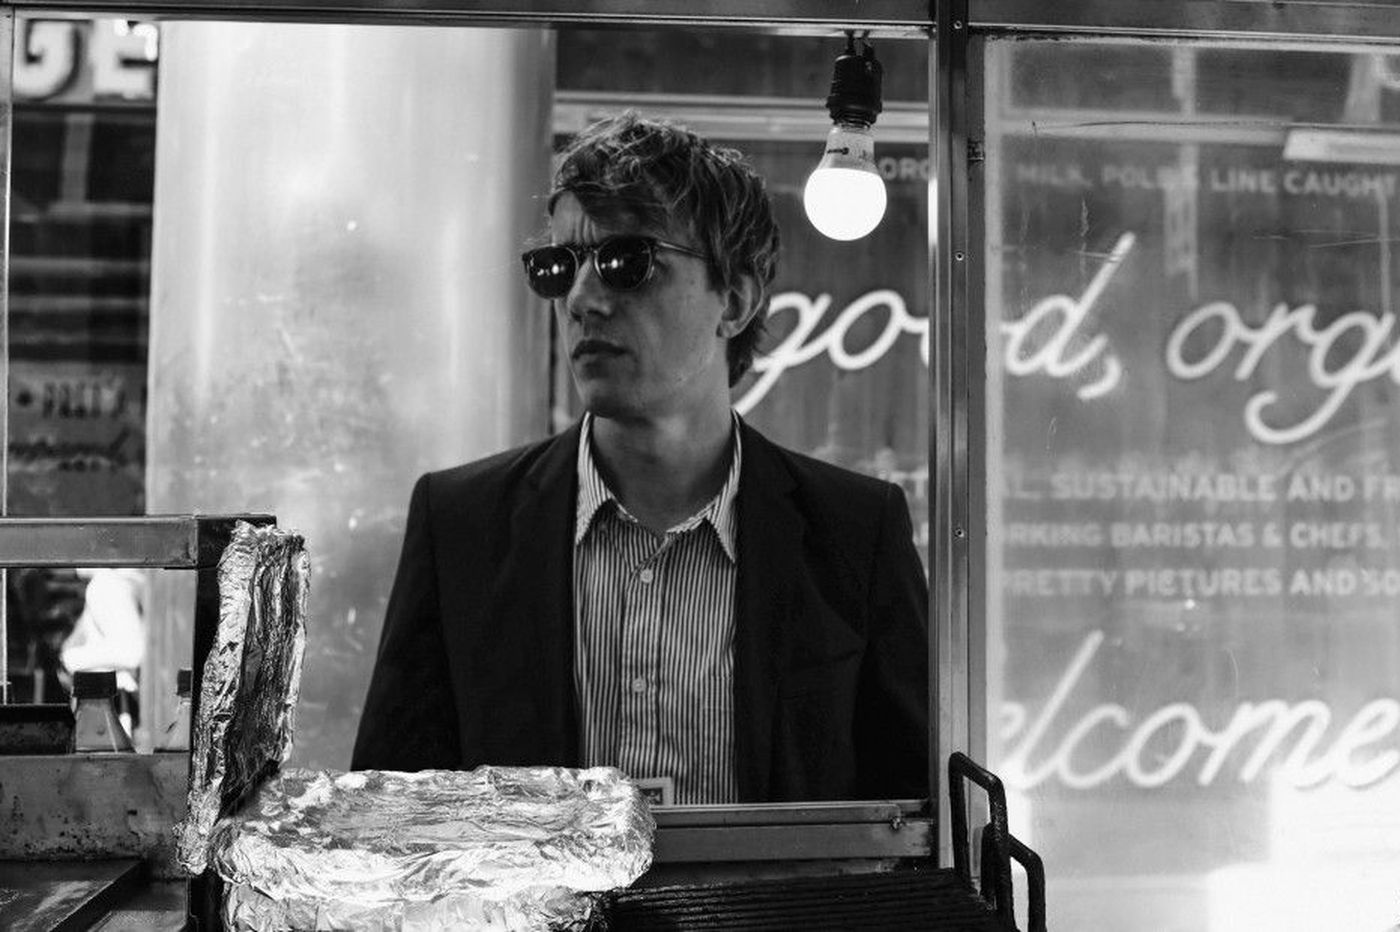 Lansdowne guitar hero Steve Gunn memorializes his 'Stonehurst Cowboy' father on 'The Unseen in Between'